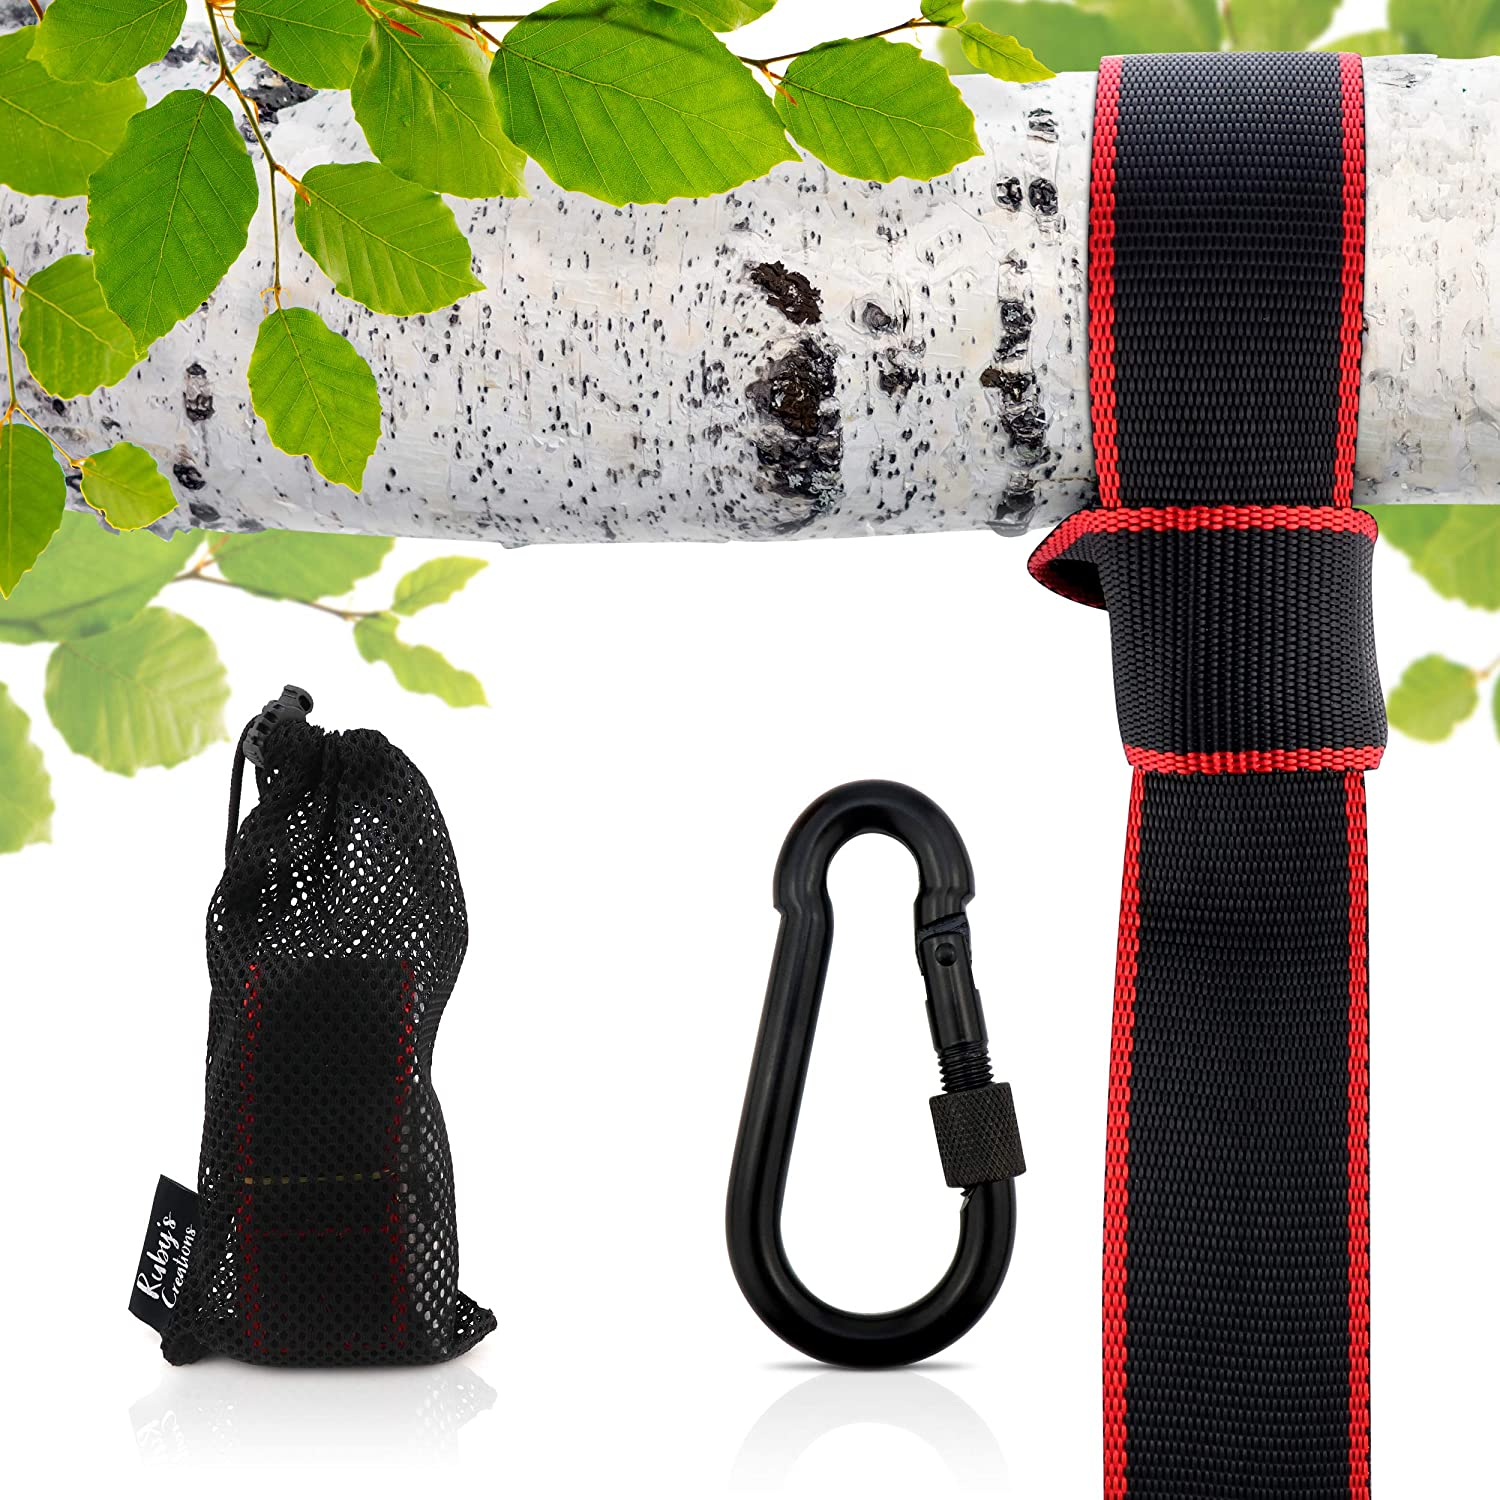 Tree Strap Swing Hanging Kit: Each SGS Certified, 10 ft Adjustable Strap Supports Over 1700 lbs; Ideal For Swing Seats, Tire Swings, Saucers, and More. Includes Heavy Duty Carabiner and Carrying Bag Ruby's Creations